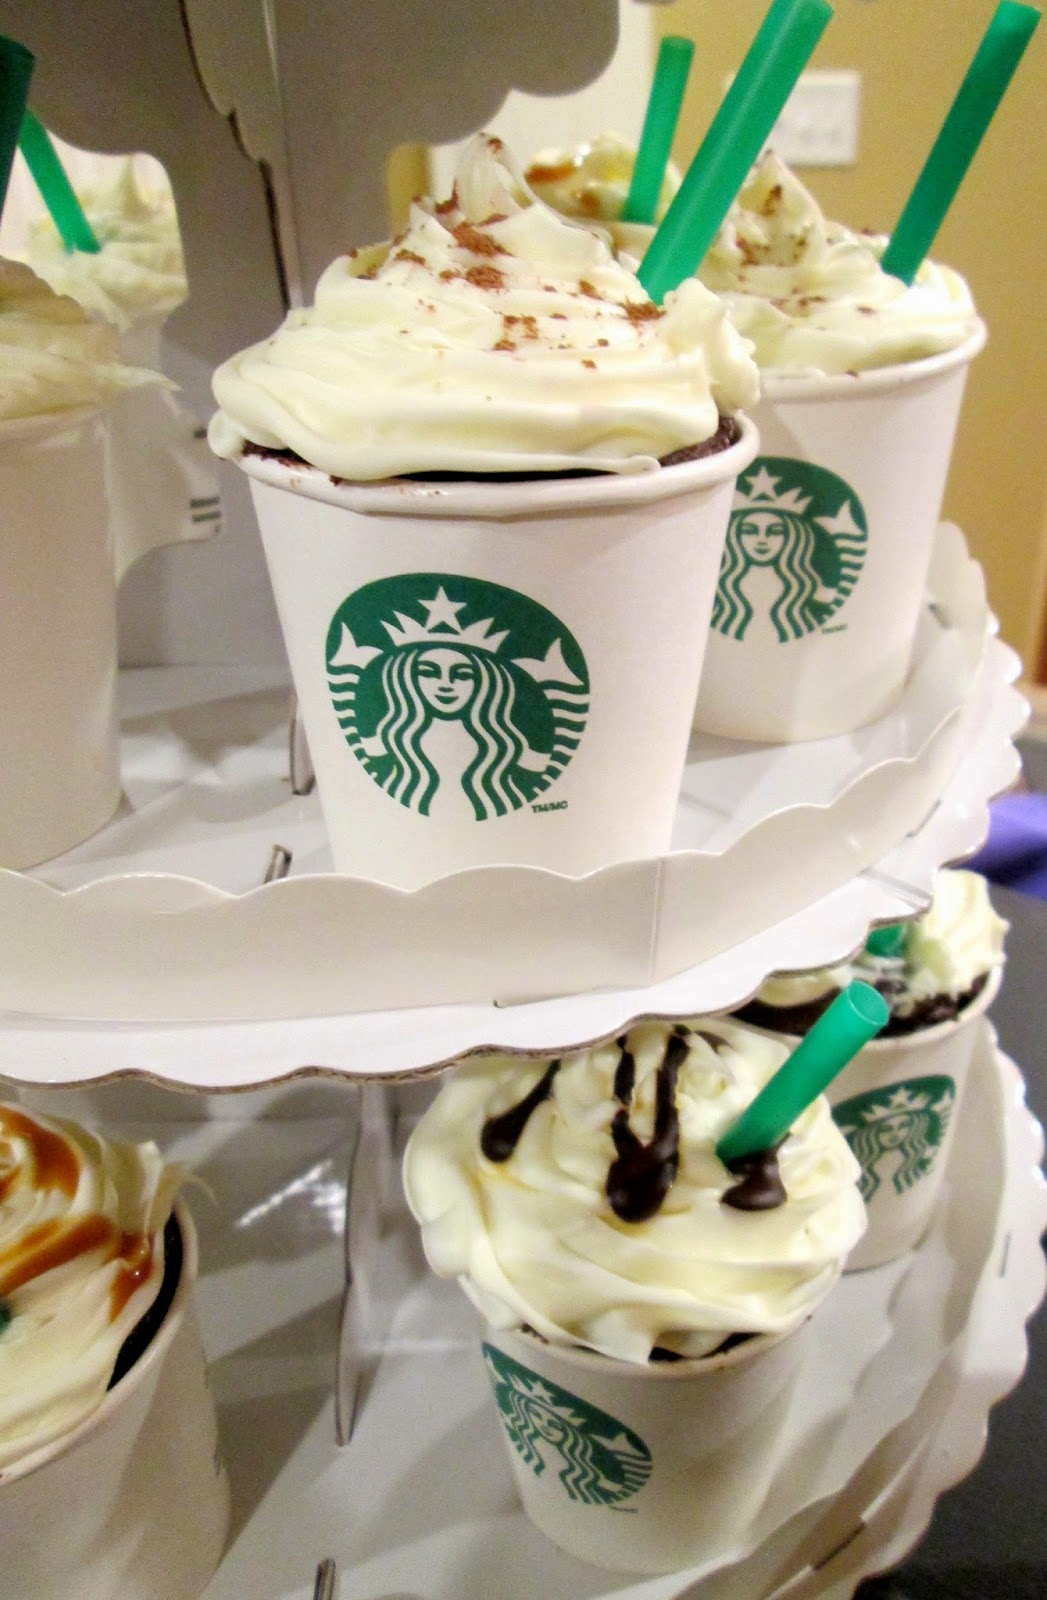 Lifestyle post on how to make cupcake frappuccinos for starbucks birthday party